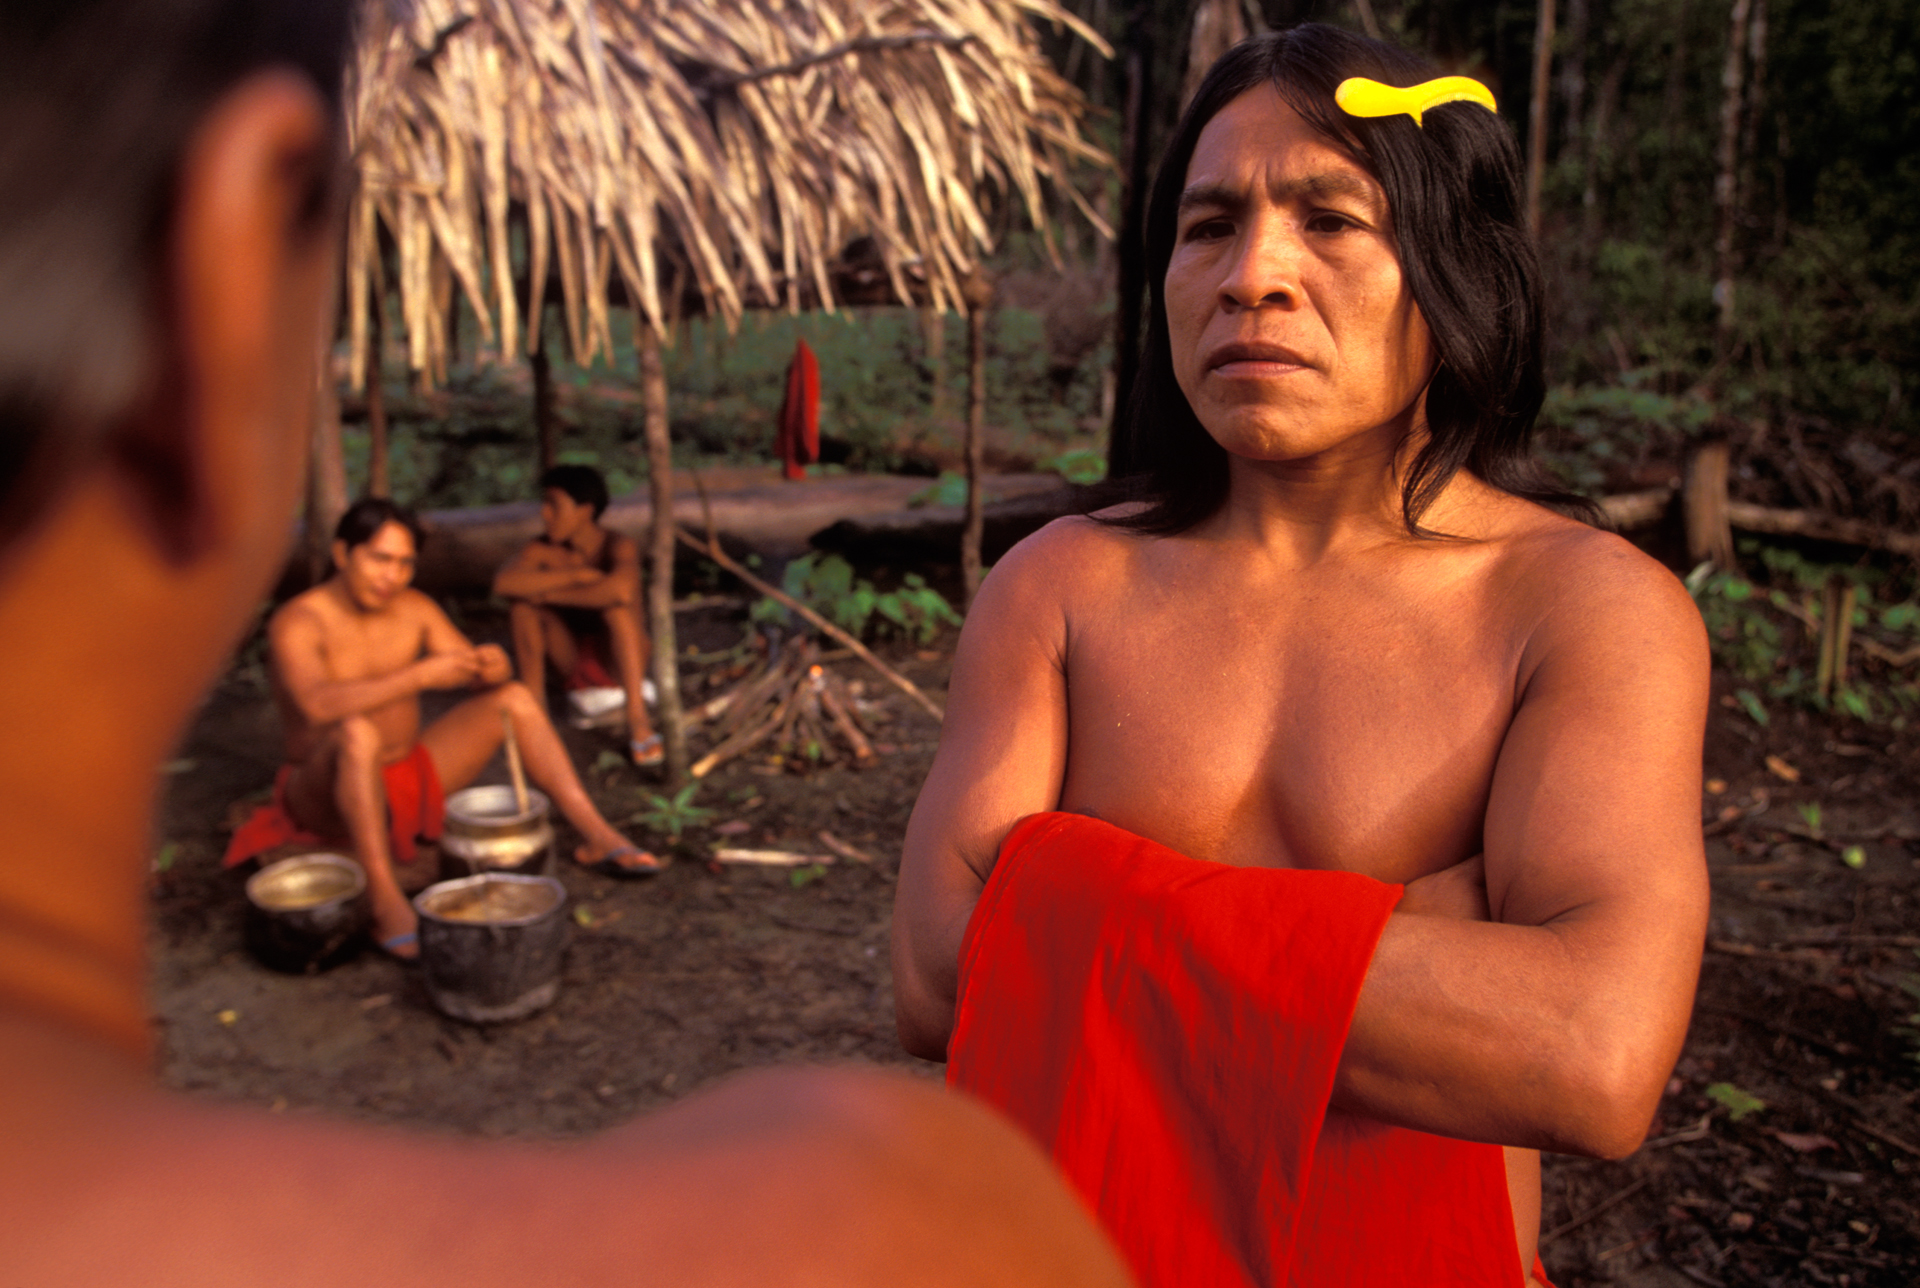 Kumare, chief of the Waiapi, listens attentively. A yellow plastic comb and the red loincloth are some of the visible influences from western culture.  Ari, Brazil